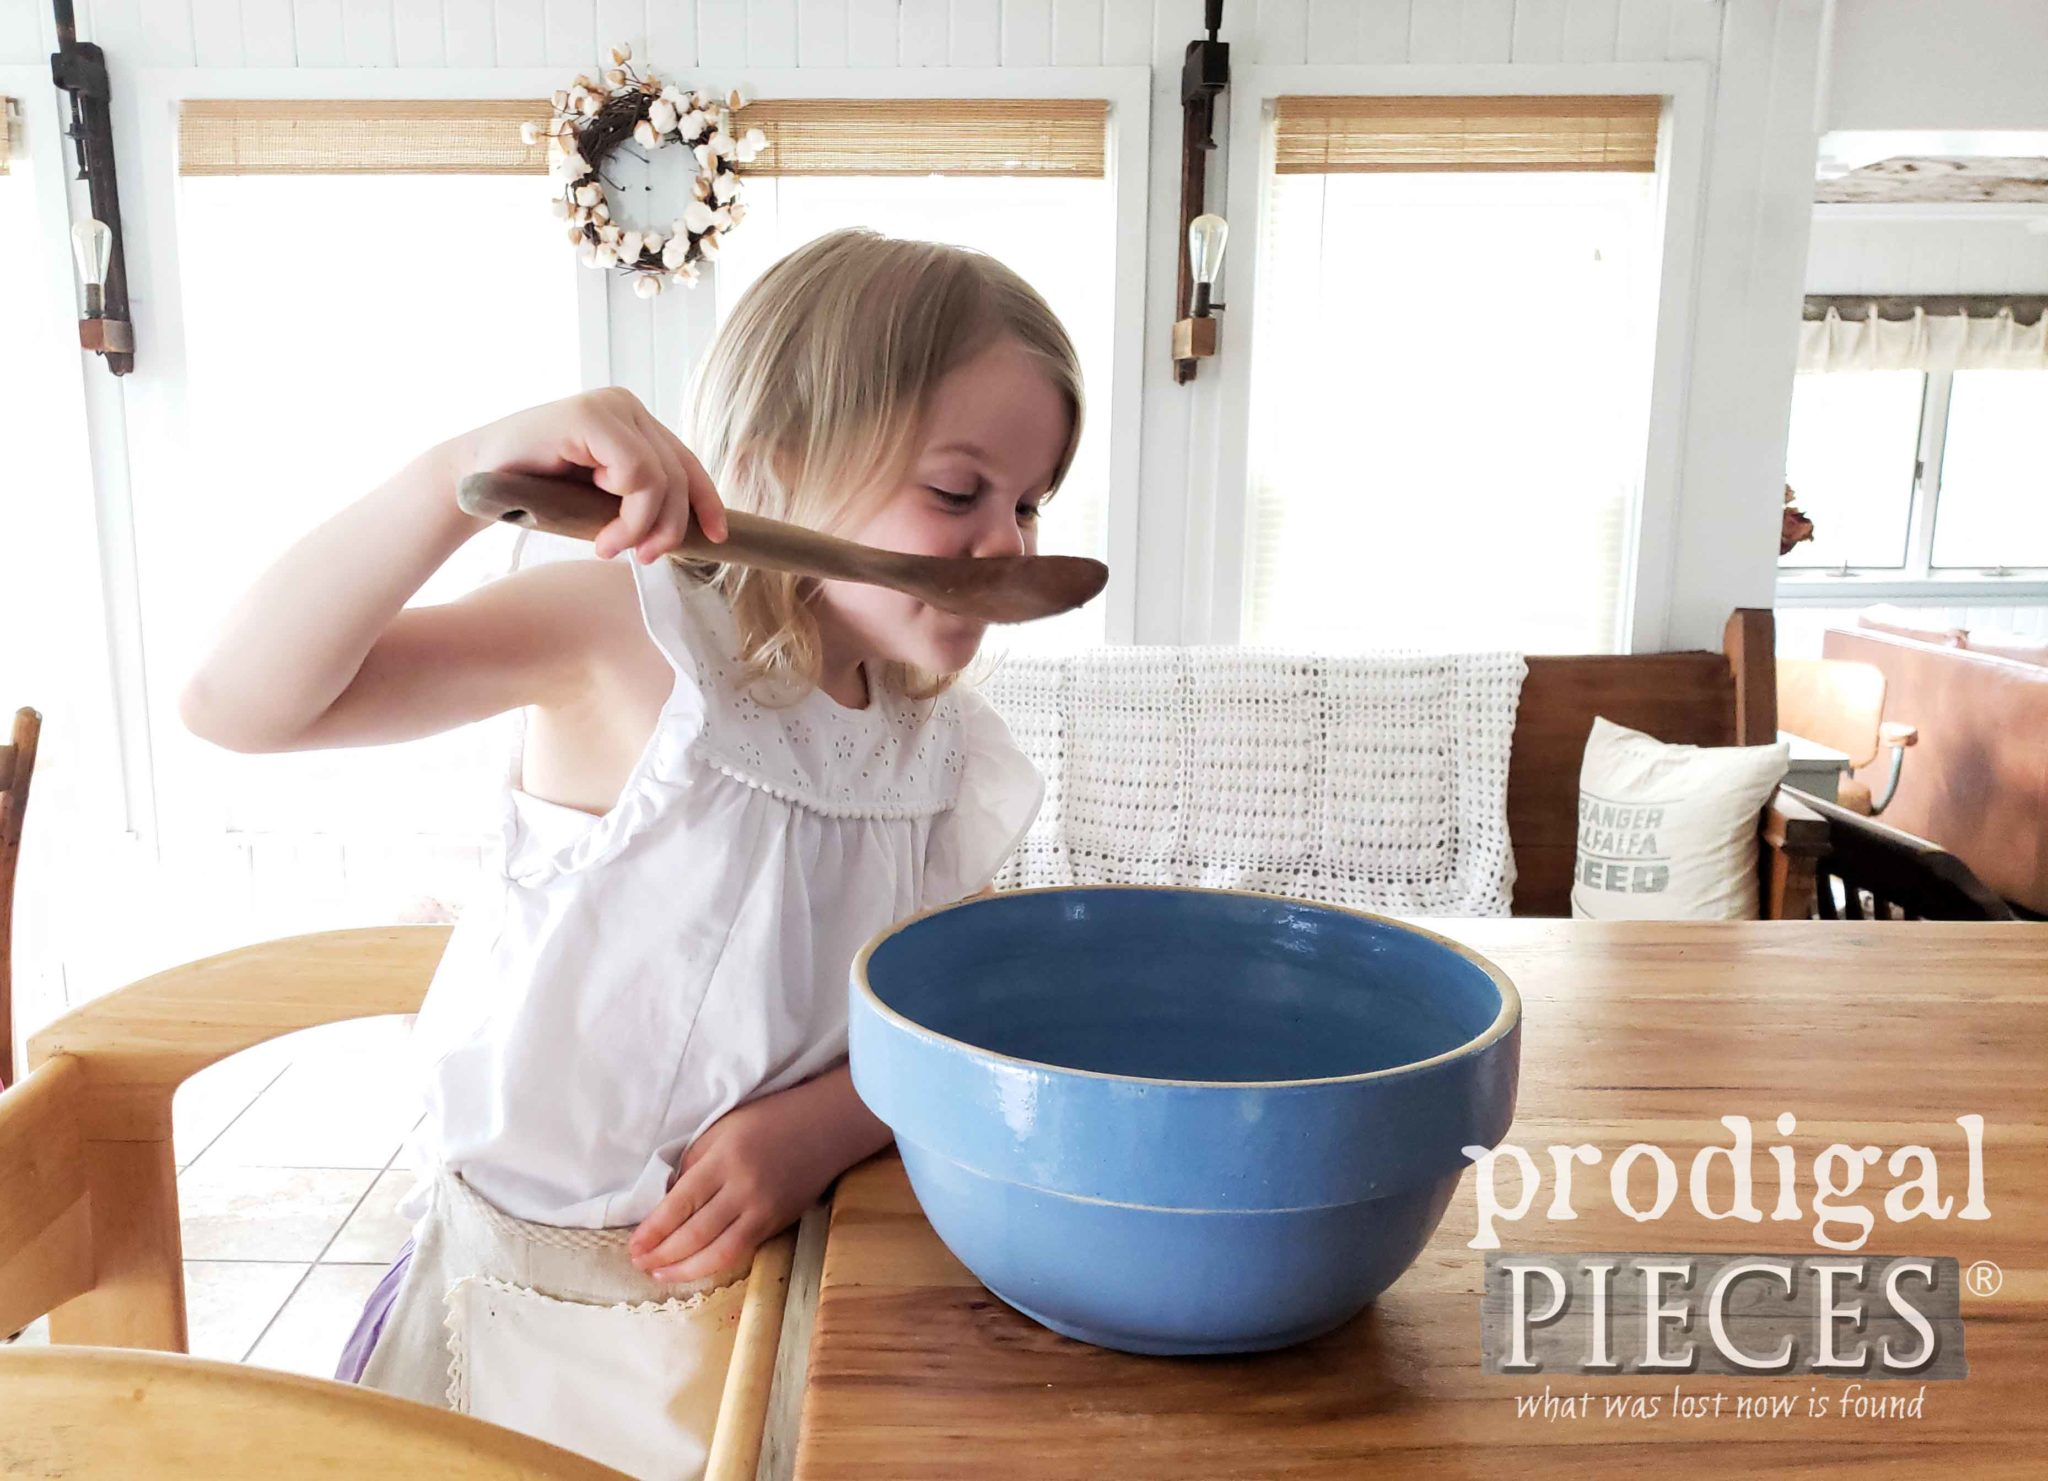 Toddler with Antique Mixing Bowl in Farmhouse Kitchen | prodigalpieces.com #prodigalpieces #farmhouse #home #homedecor